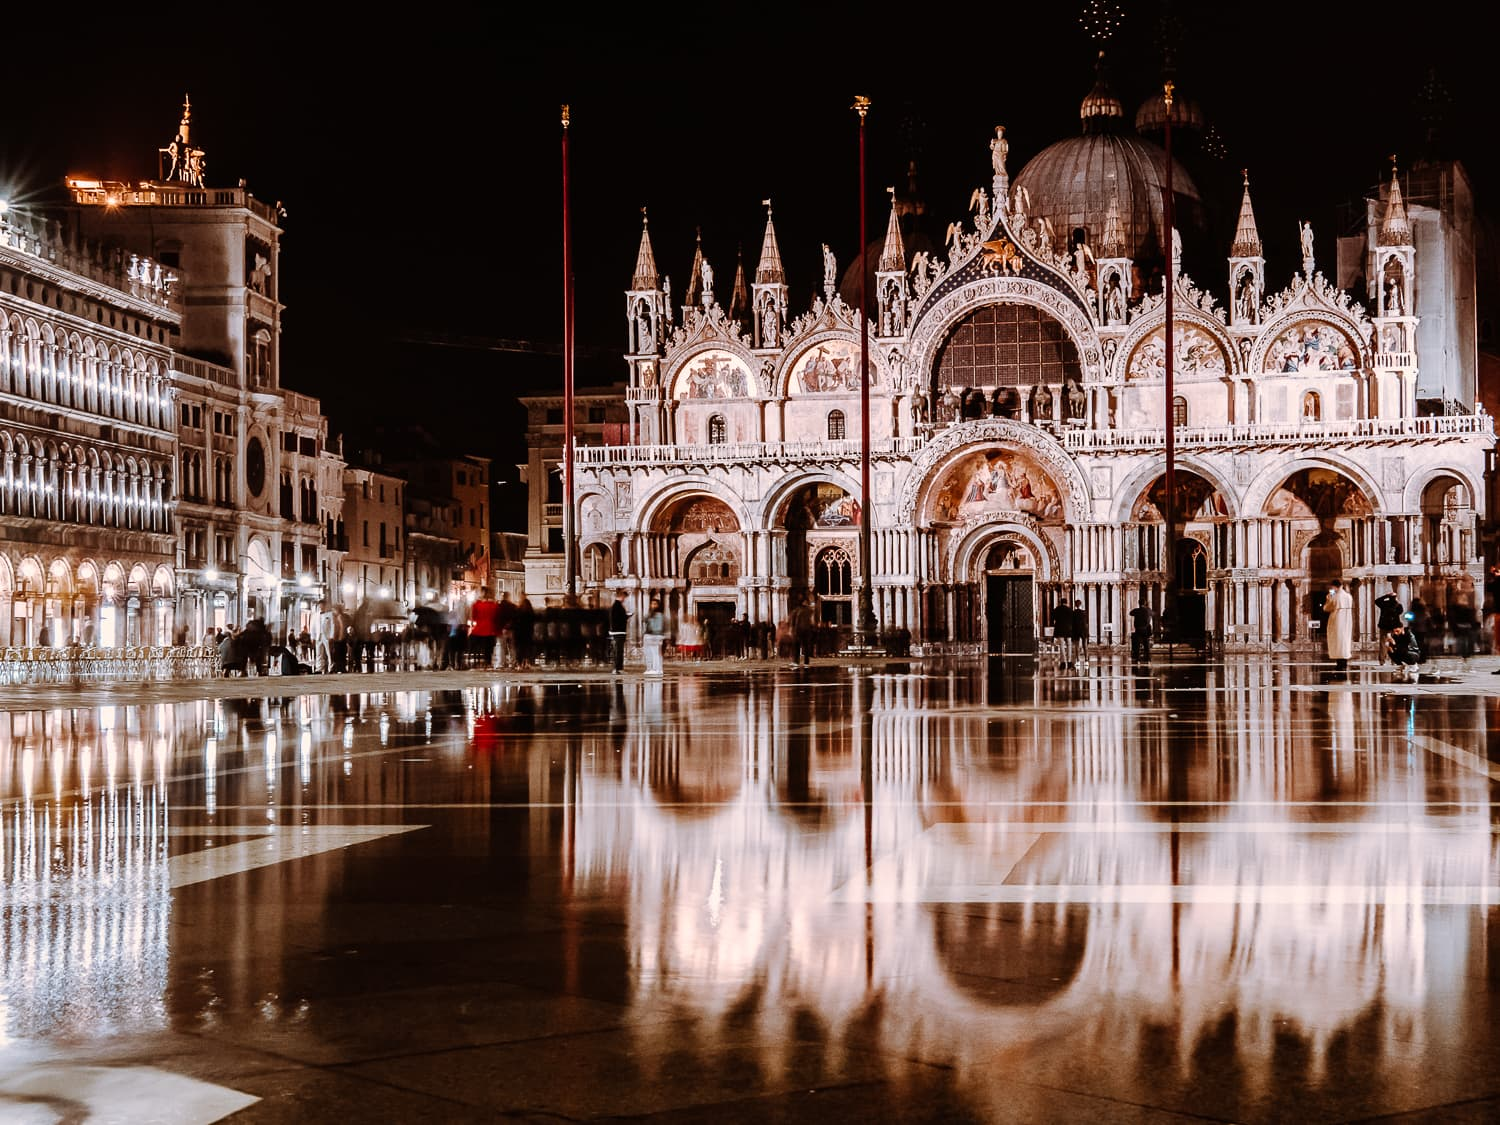 Acqua Alta (high water) in front of Basilica San Marco in Venice, Italy's Piazza San Marco.